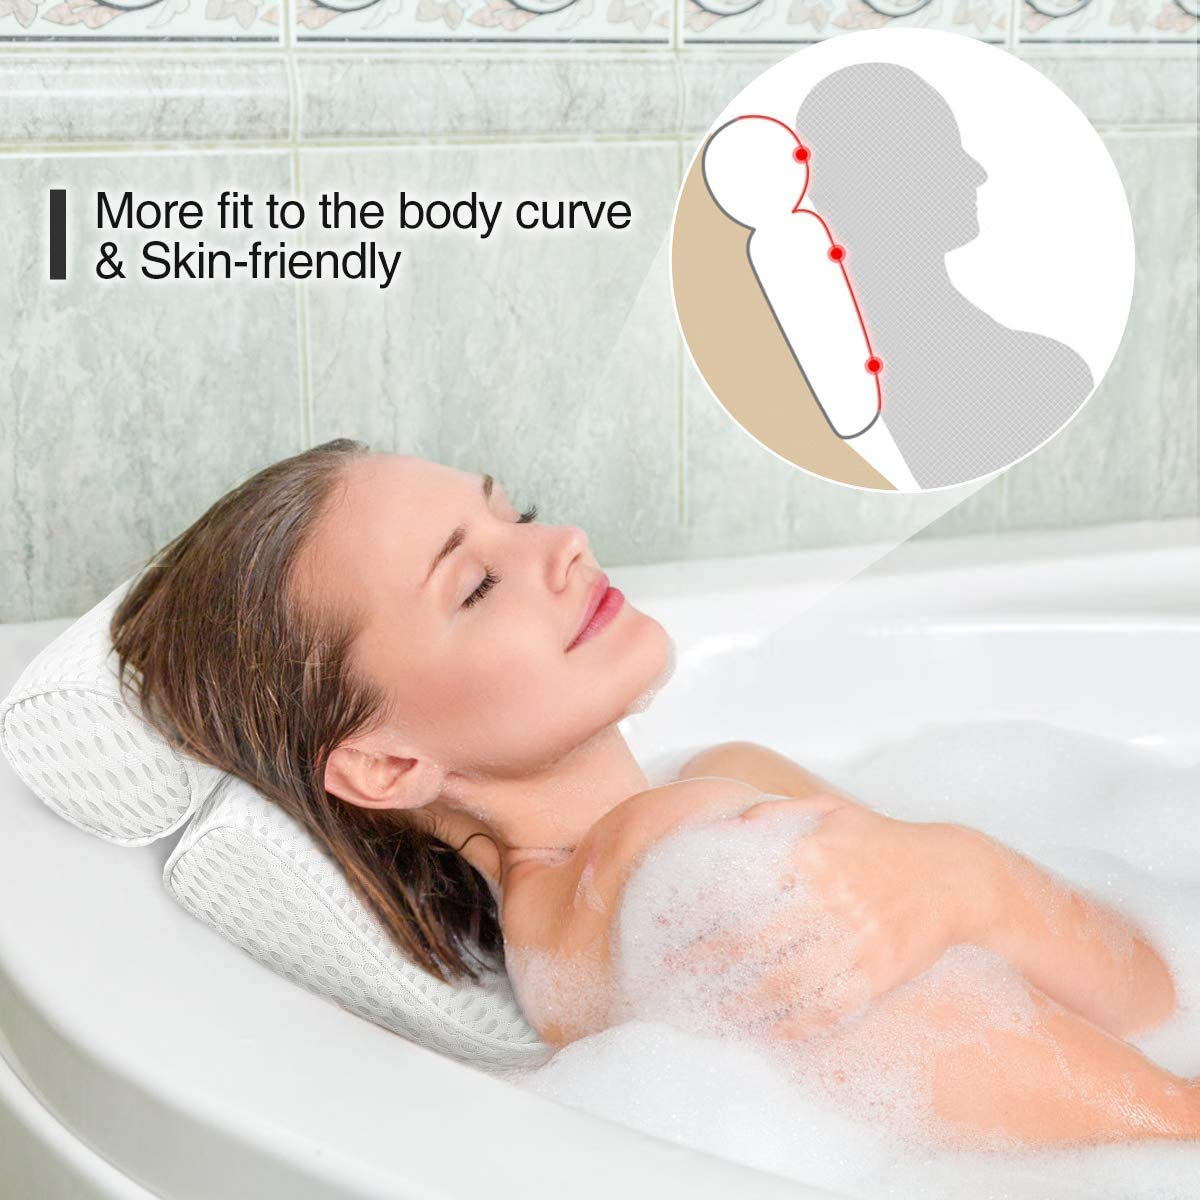 Fitheaven Bath Pillow for Bathtub. Tub Pillow for Women & Men, with 3D Air Mesh Breathable, Helps Support Head, Neck, and Back : Beauty